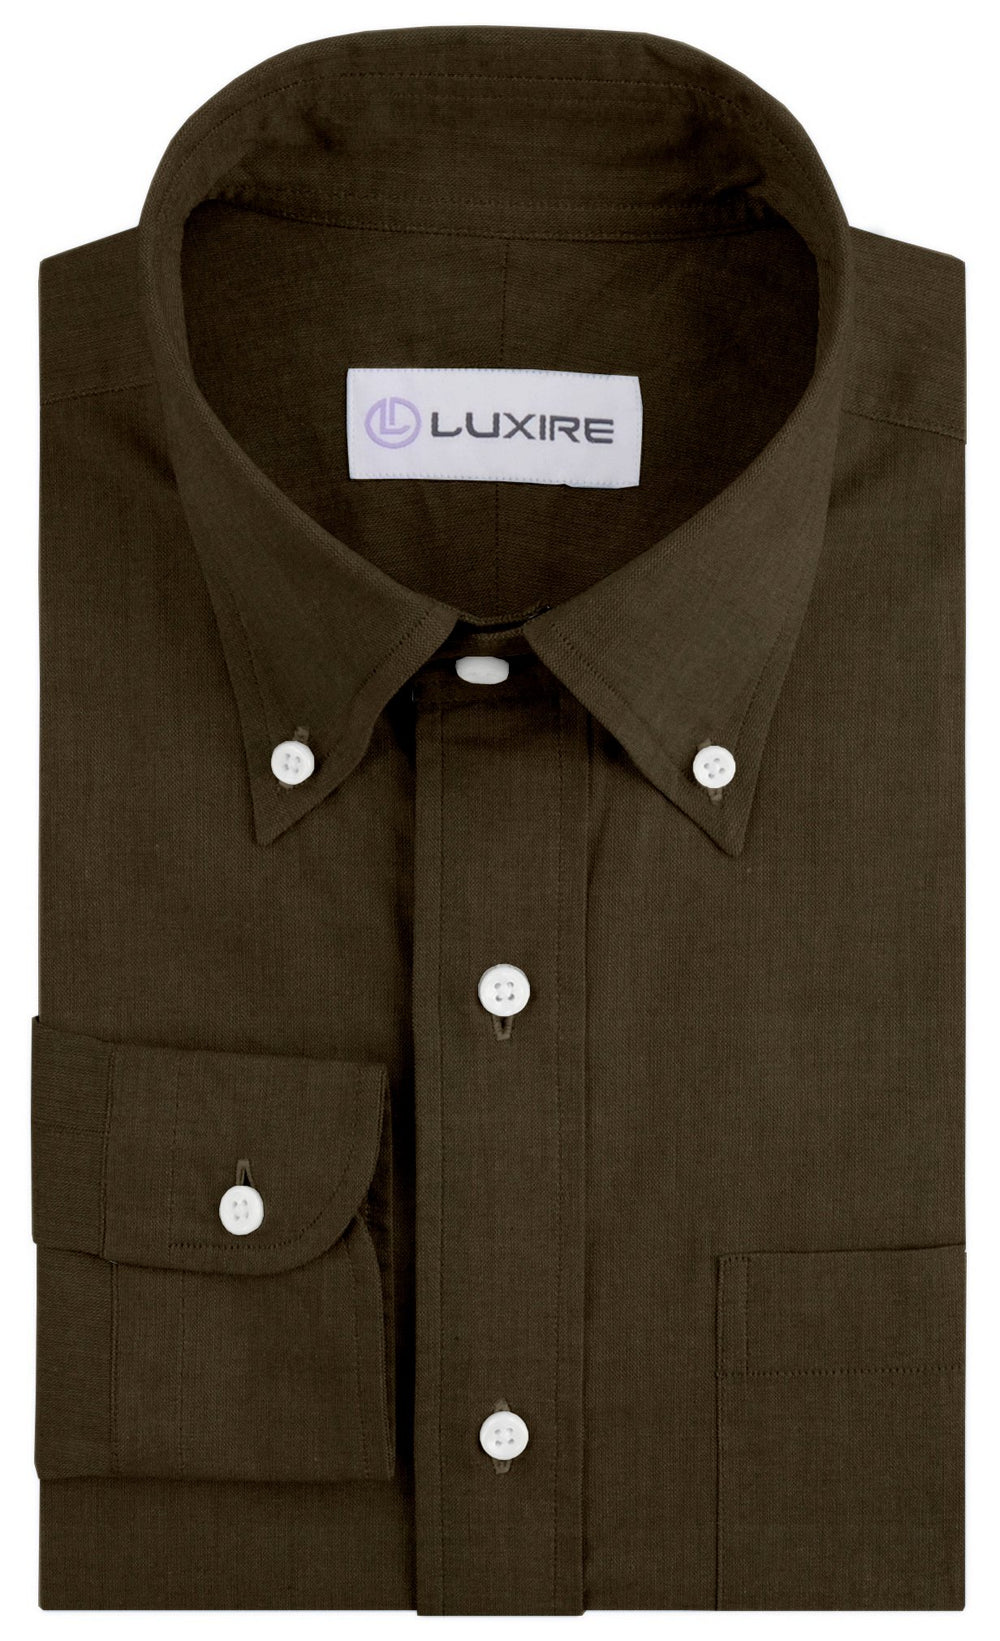 Luxire Fit-Test Trial Shirt